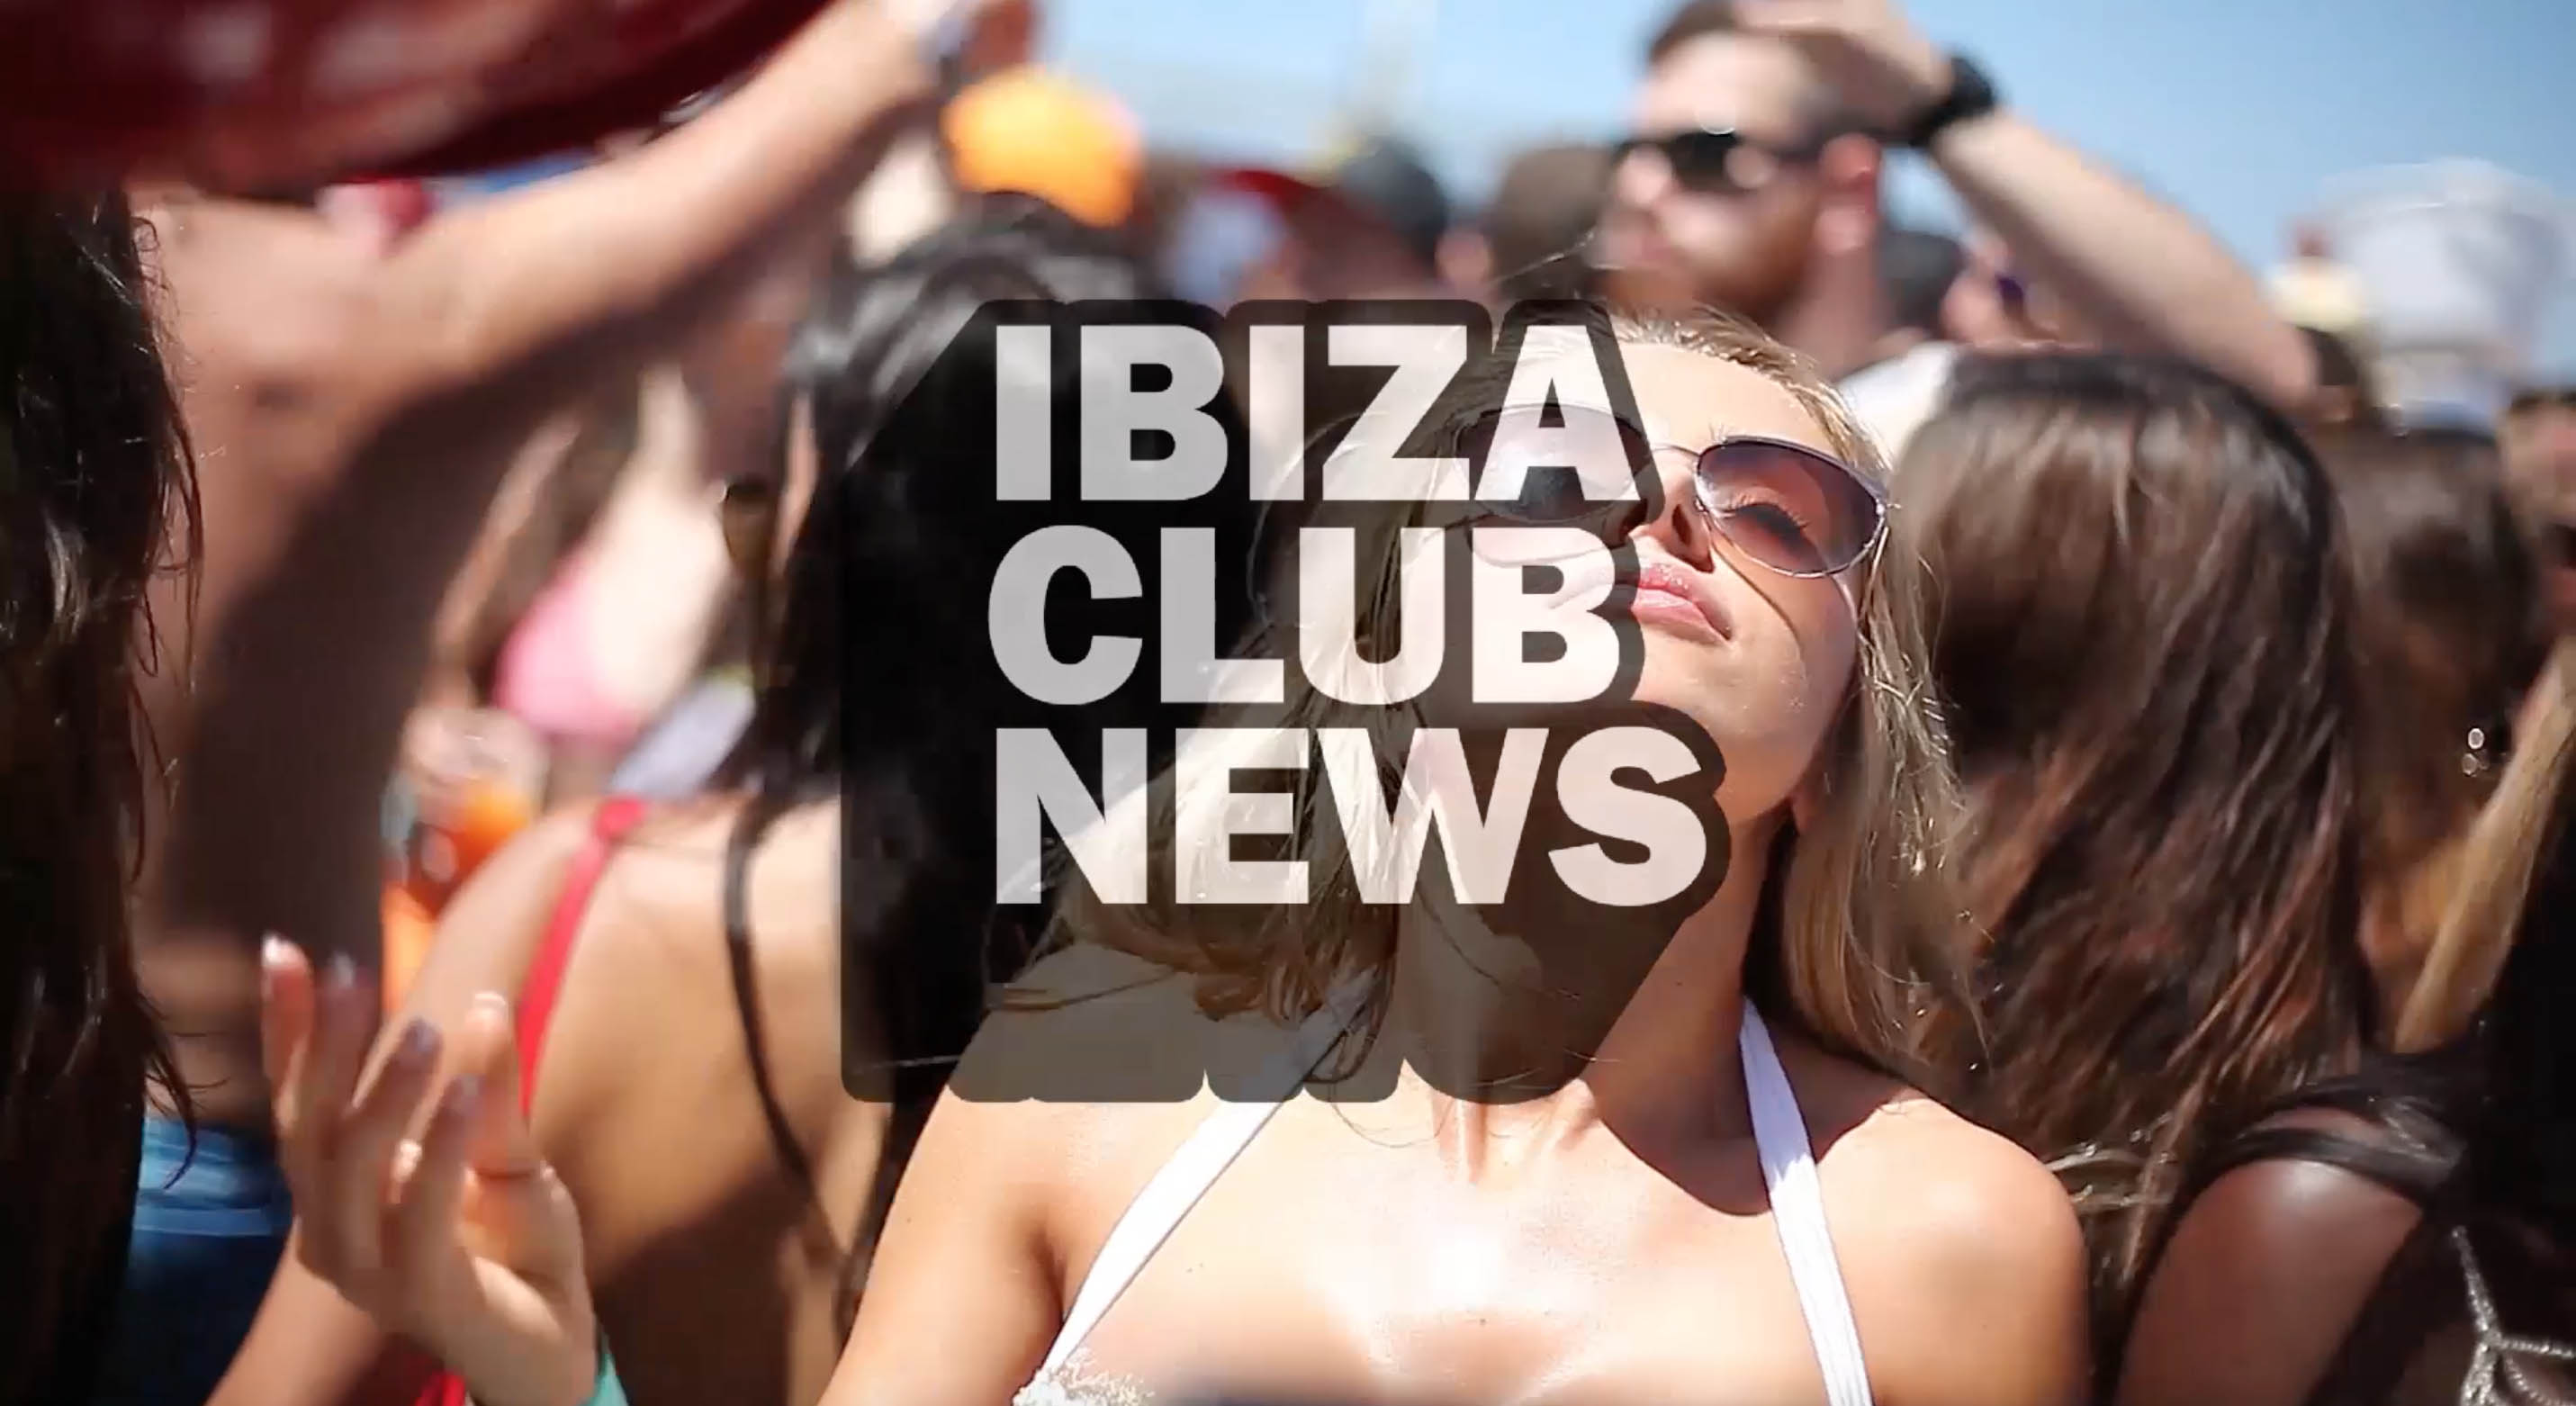 Ibiza Club News Boat Party – Hosted By Cirque De La Nuit